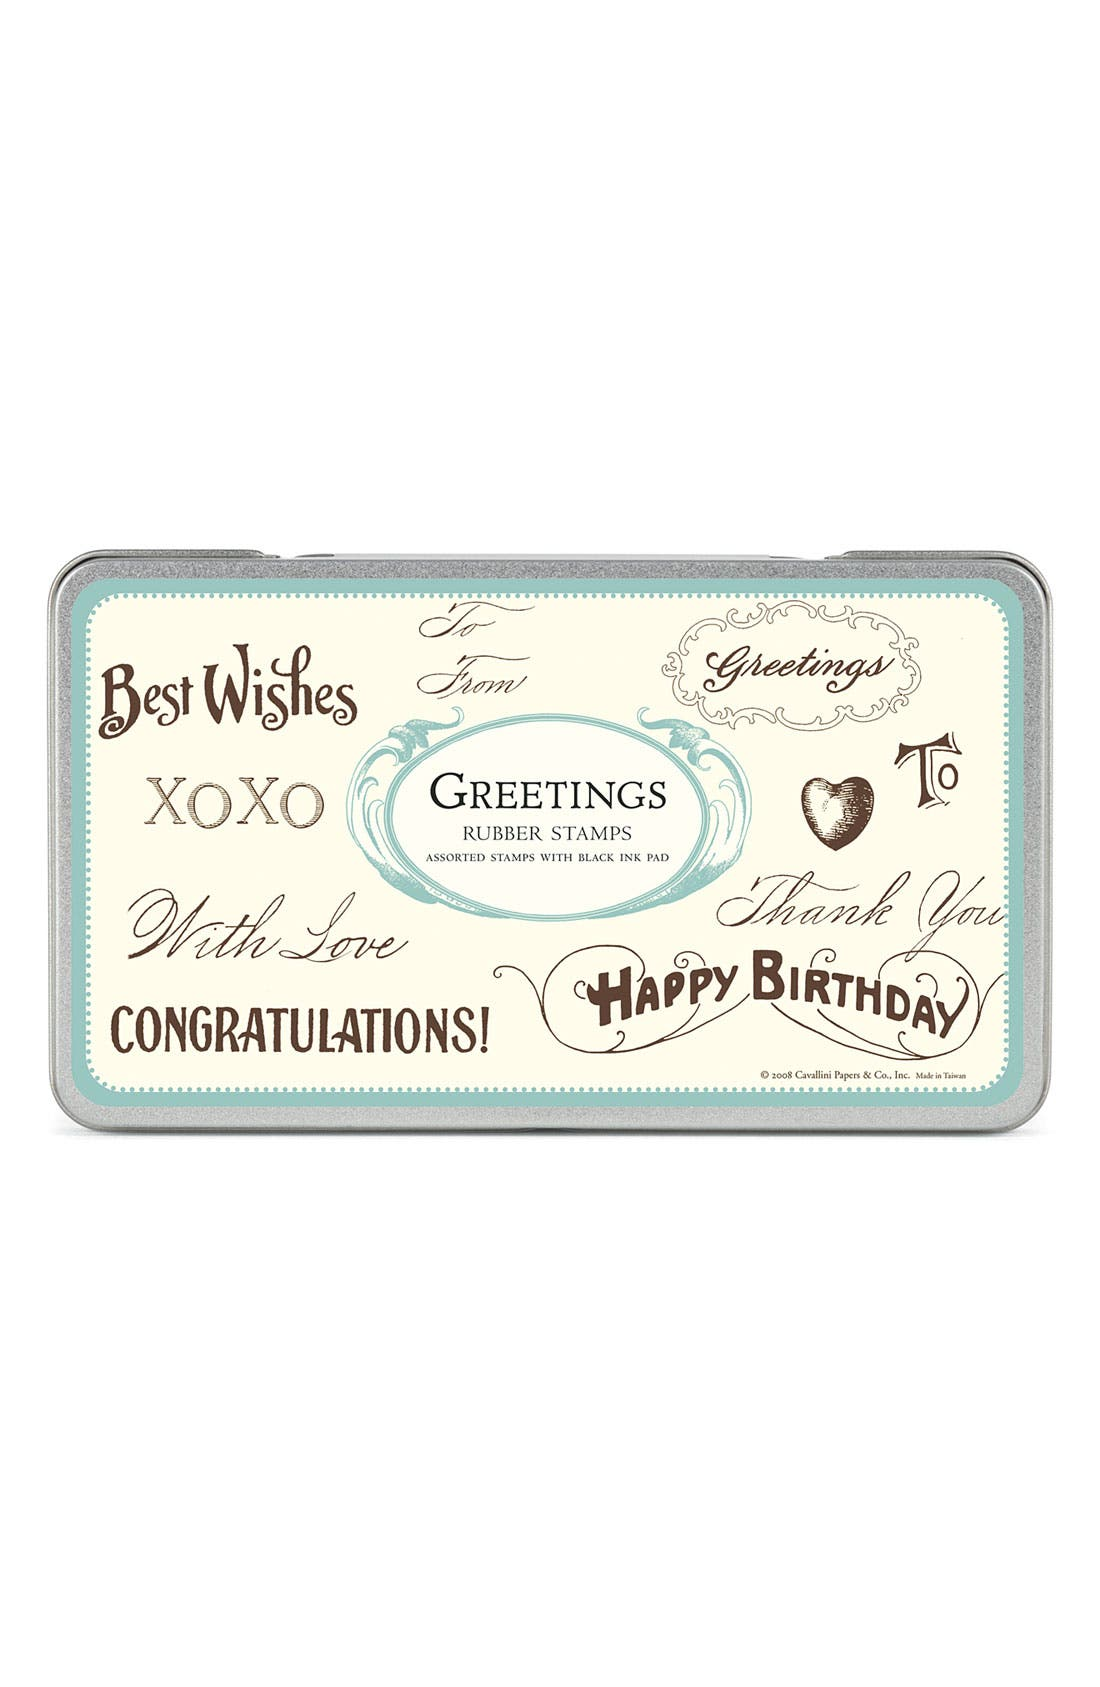 Alternate Image 1 Selected - Cavallini & Co. 'Greetings' Rubber Stamps